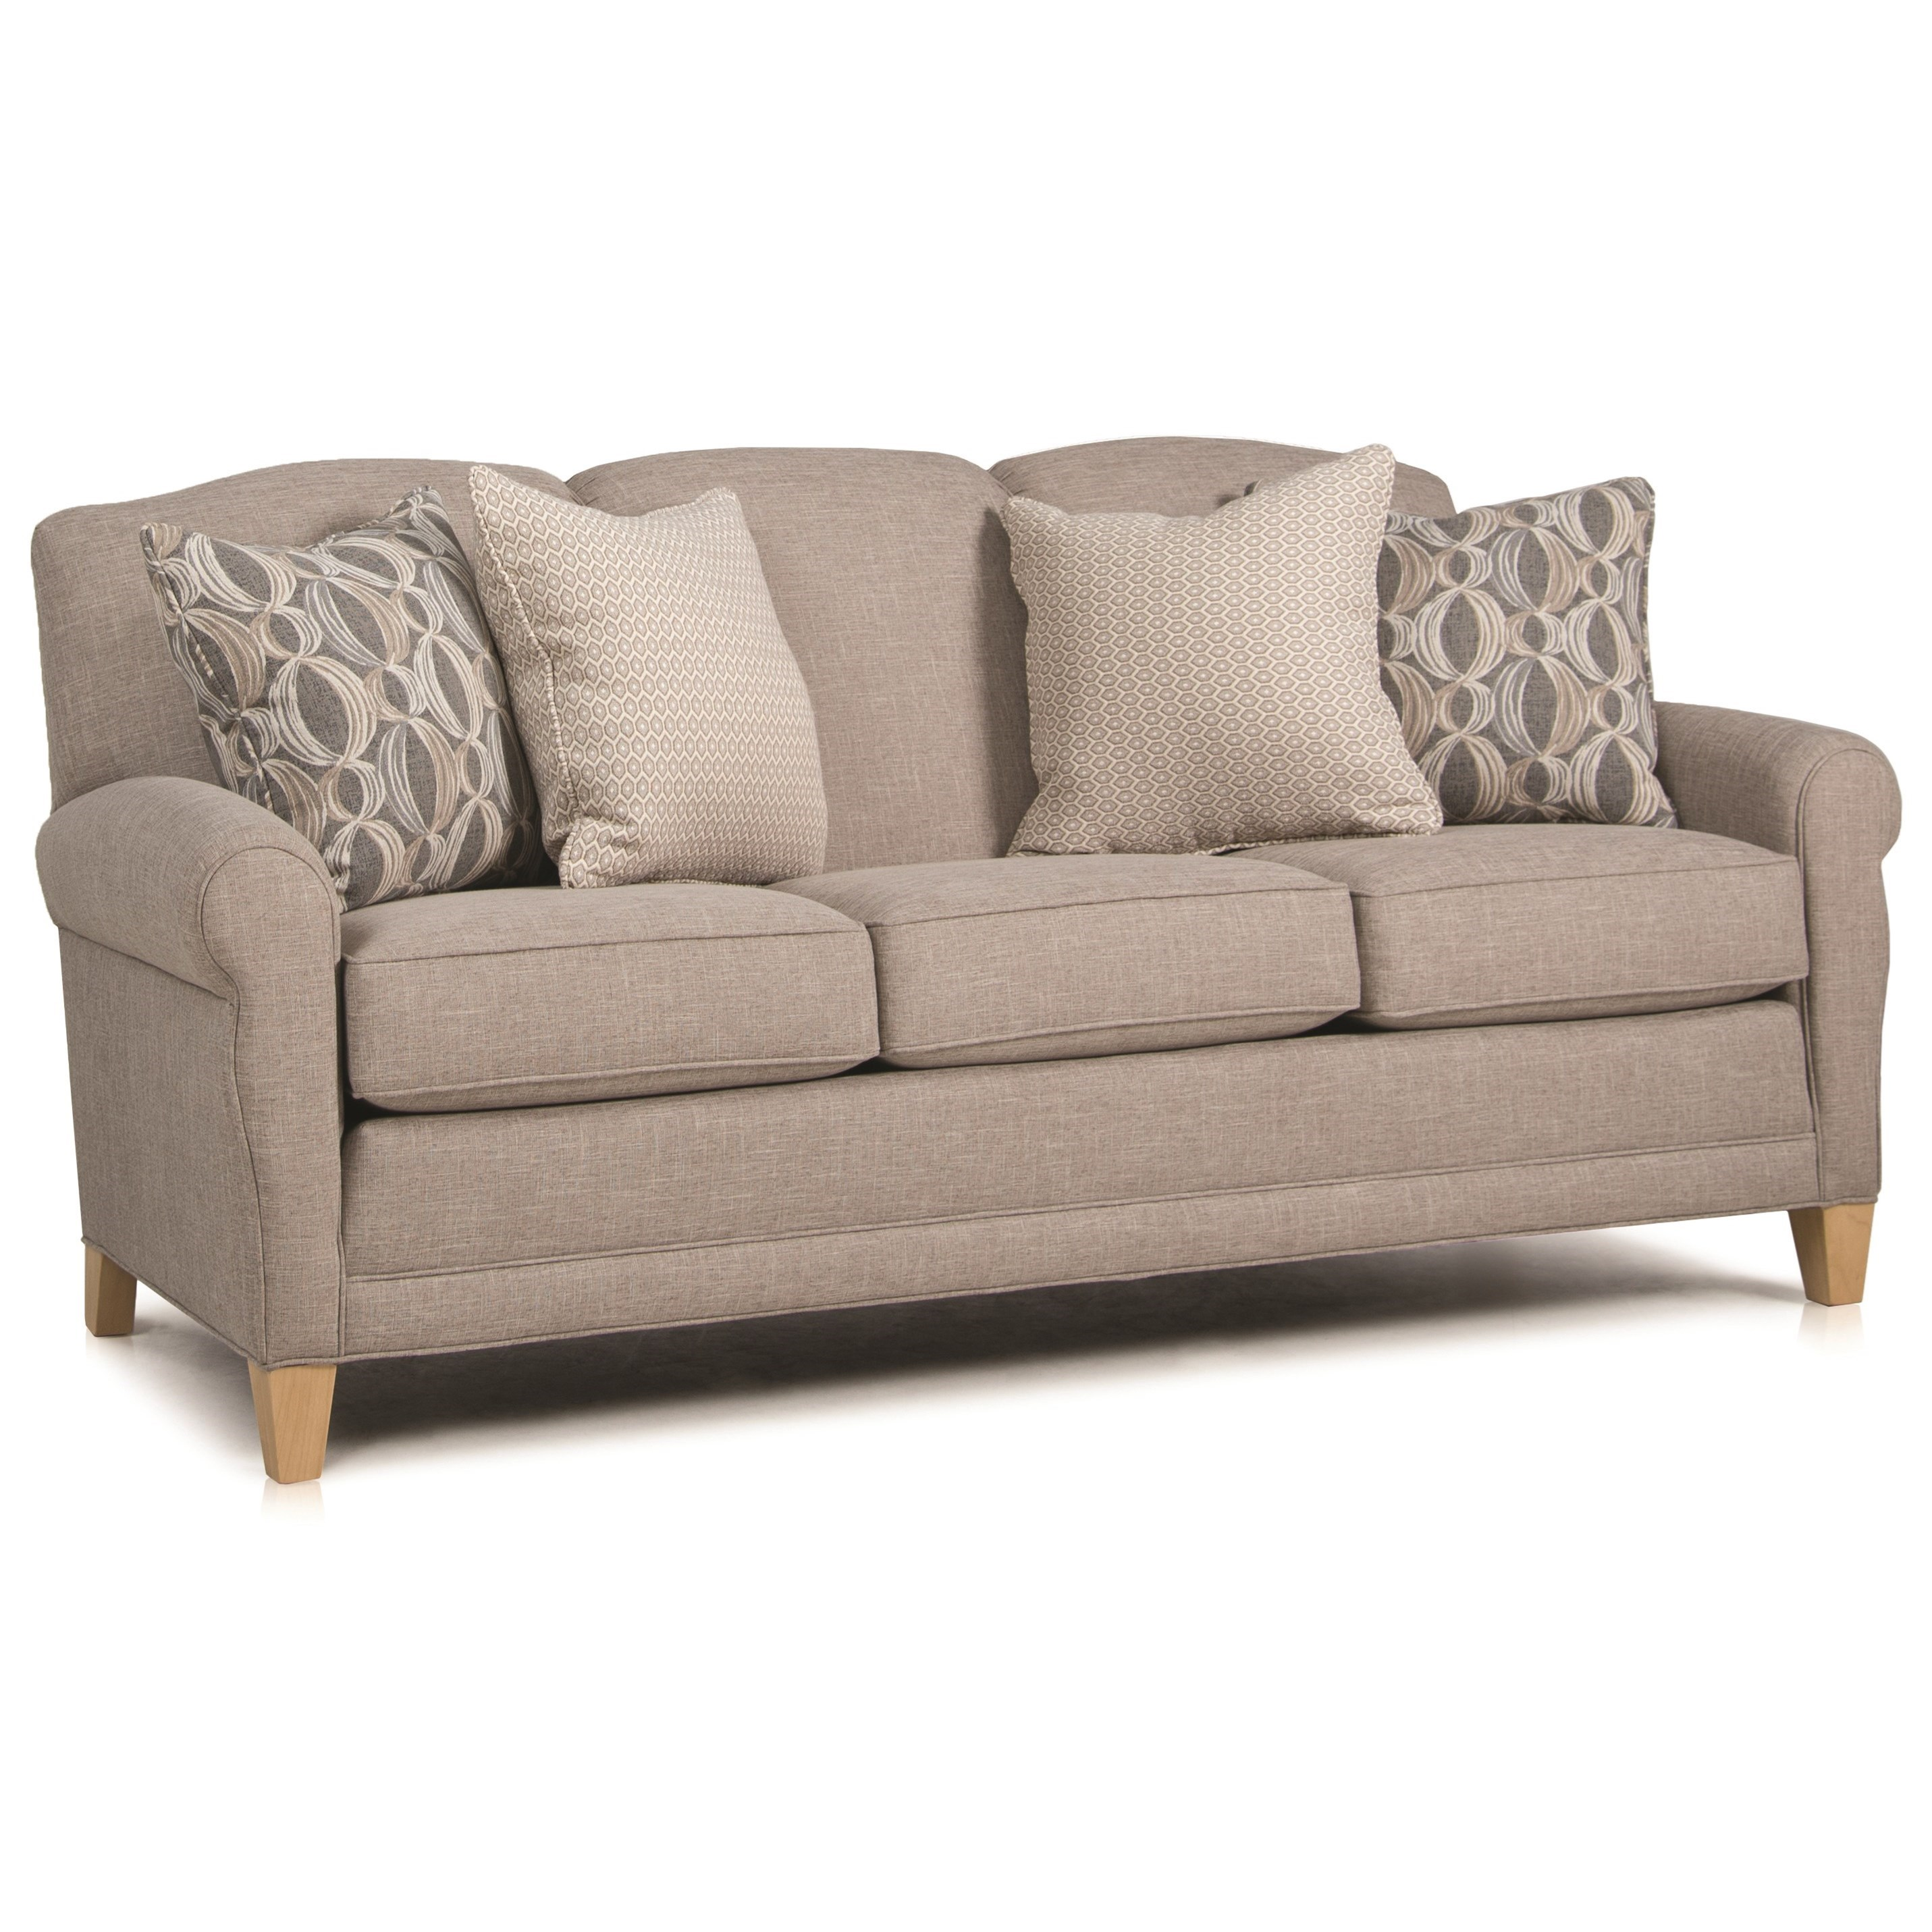 374 Stationary Sofa by Smith Brothers at Sprintz Furniture